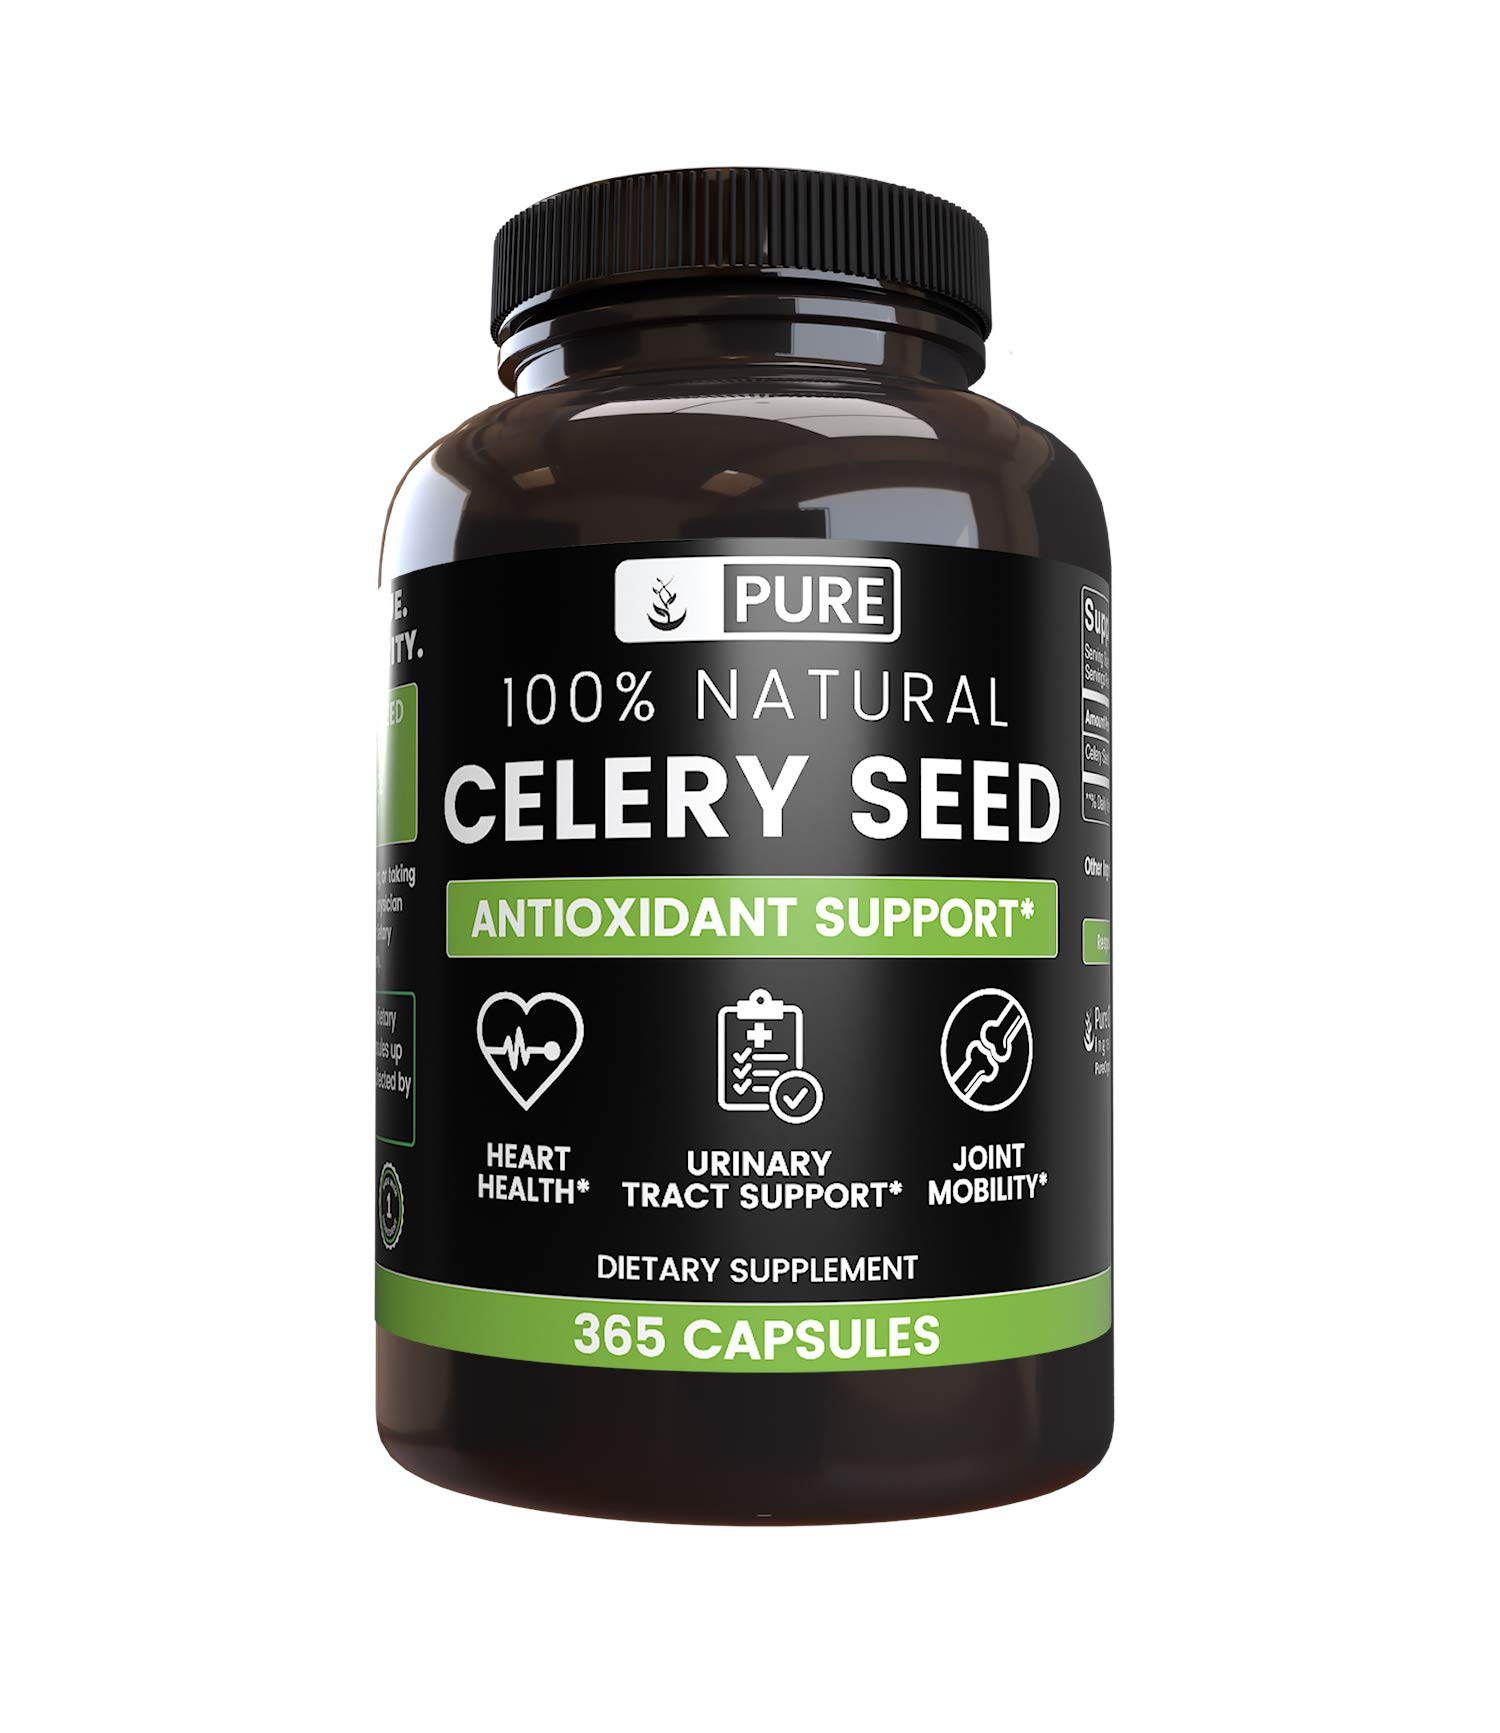 100% Natural Celery Seed, 630mg, 6 Month Supply, No Rice Filler or Magnesium Stearate, 630 mg Pure Celery Seed with No Additives, Made in USA